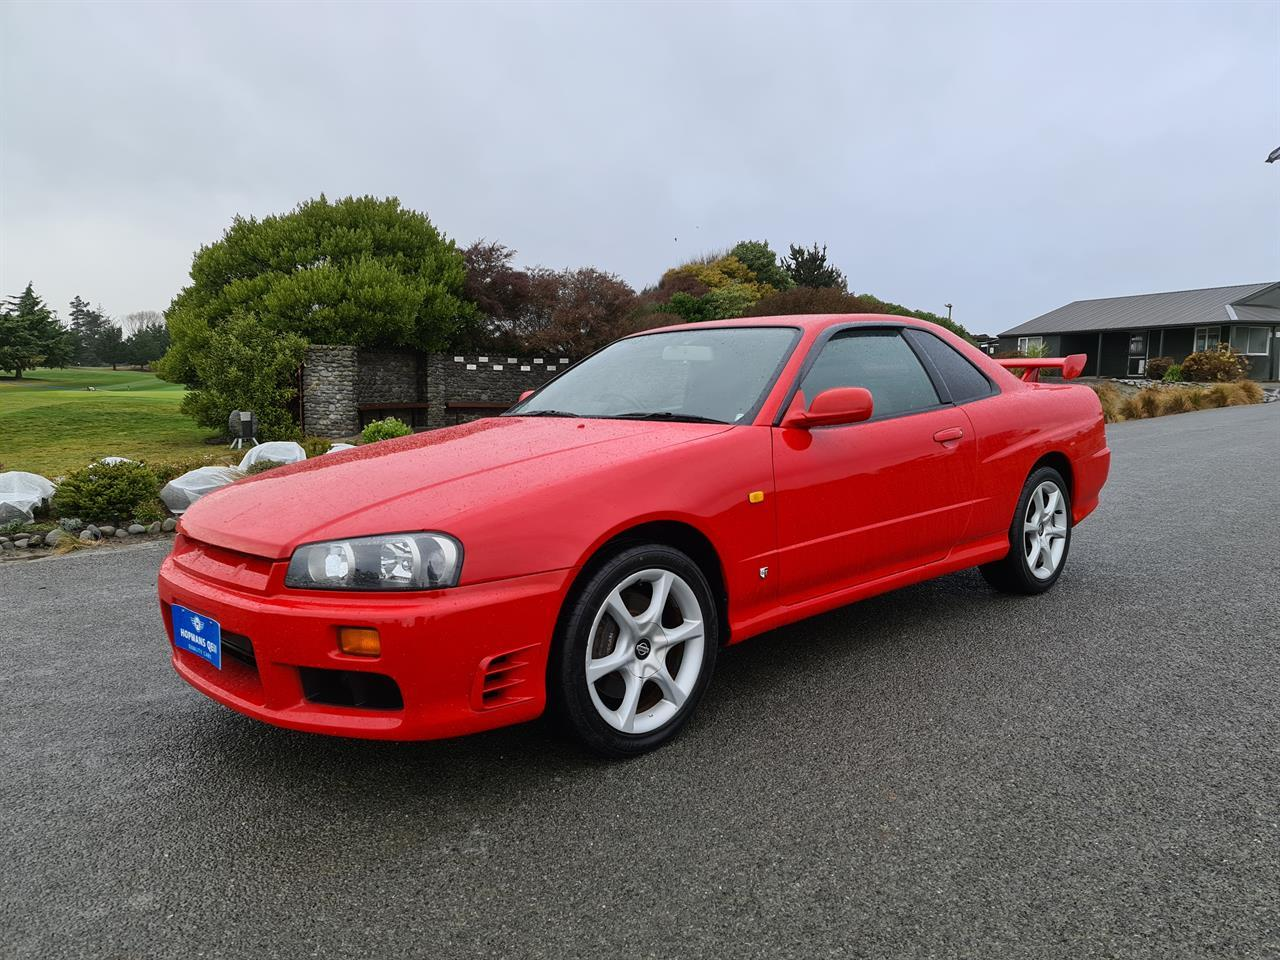 image-1, 2000 Nissan Skyline COUPE 25 GT TURBO at Christchurch